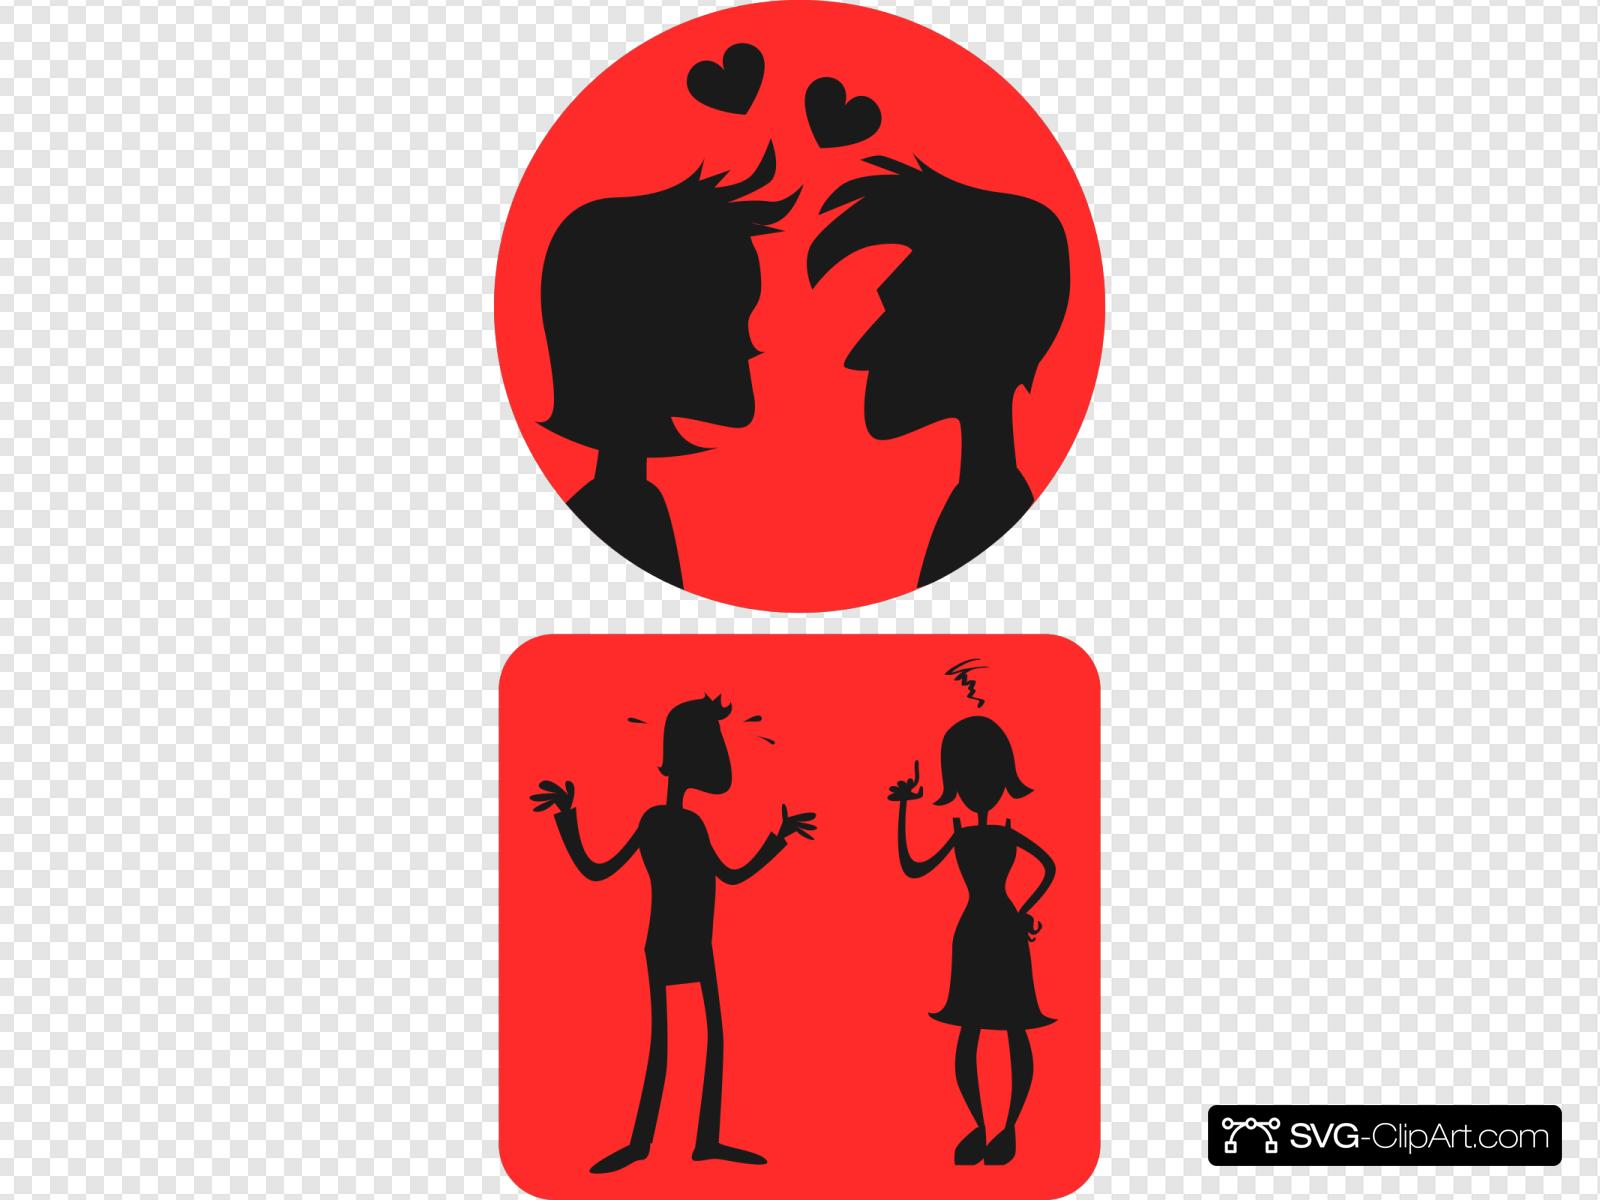 Relationships Svg Vector Relationships Clip Art Svg Clipart